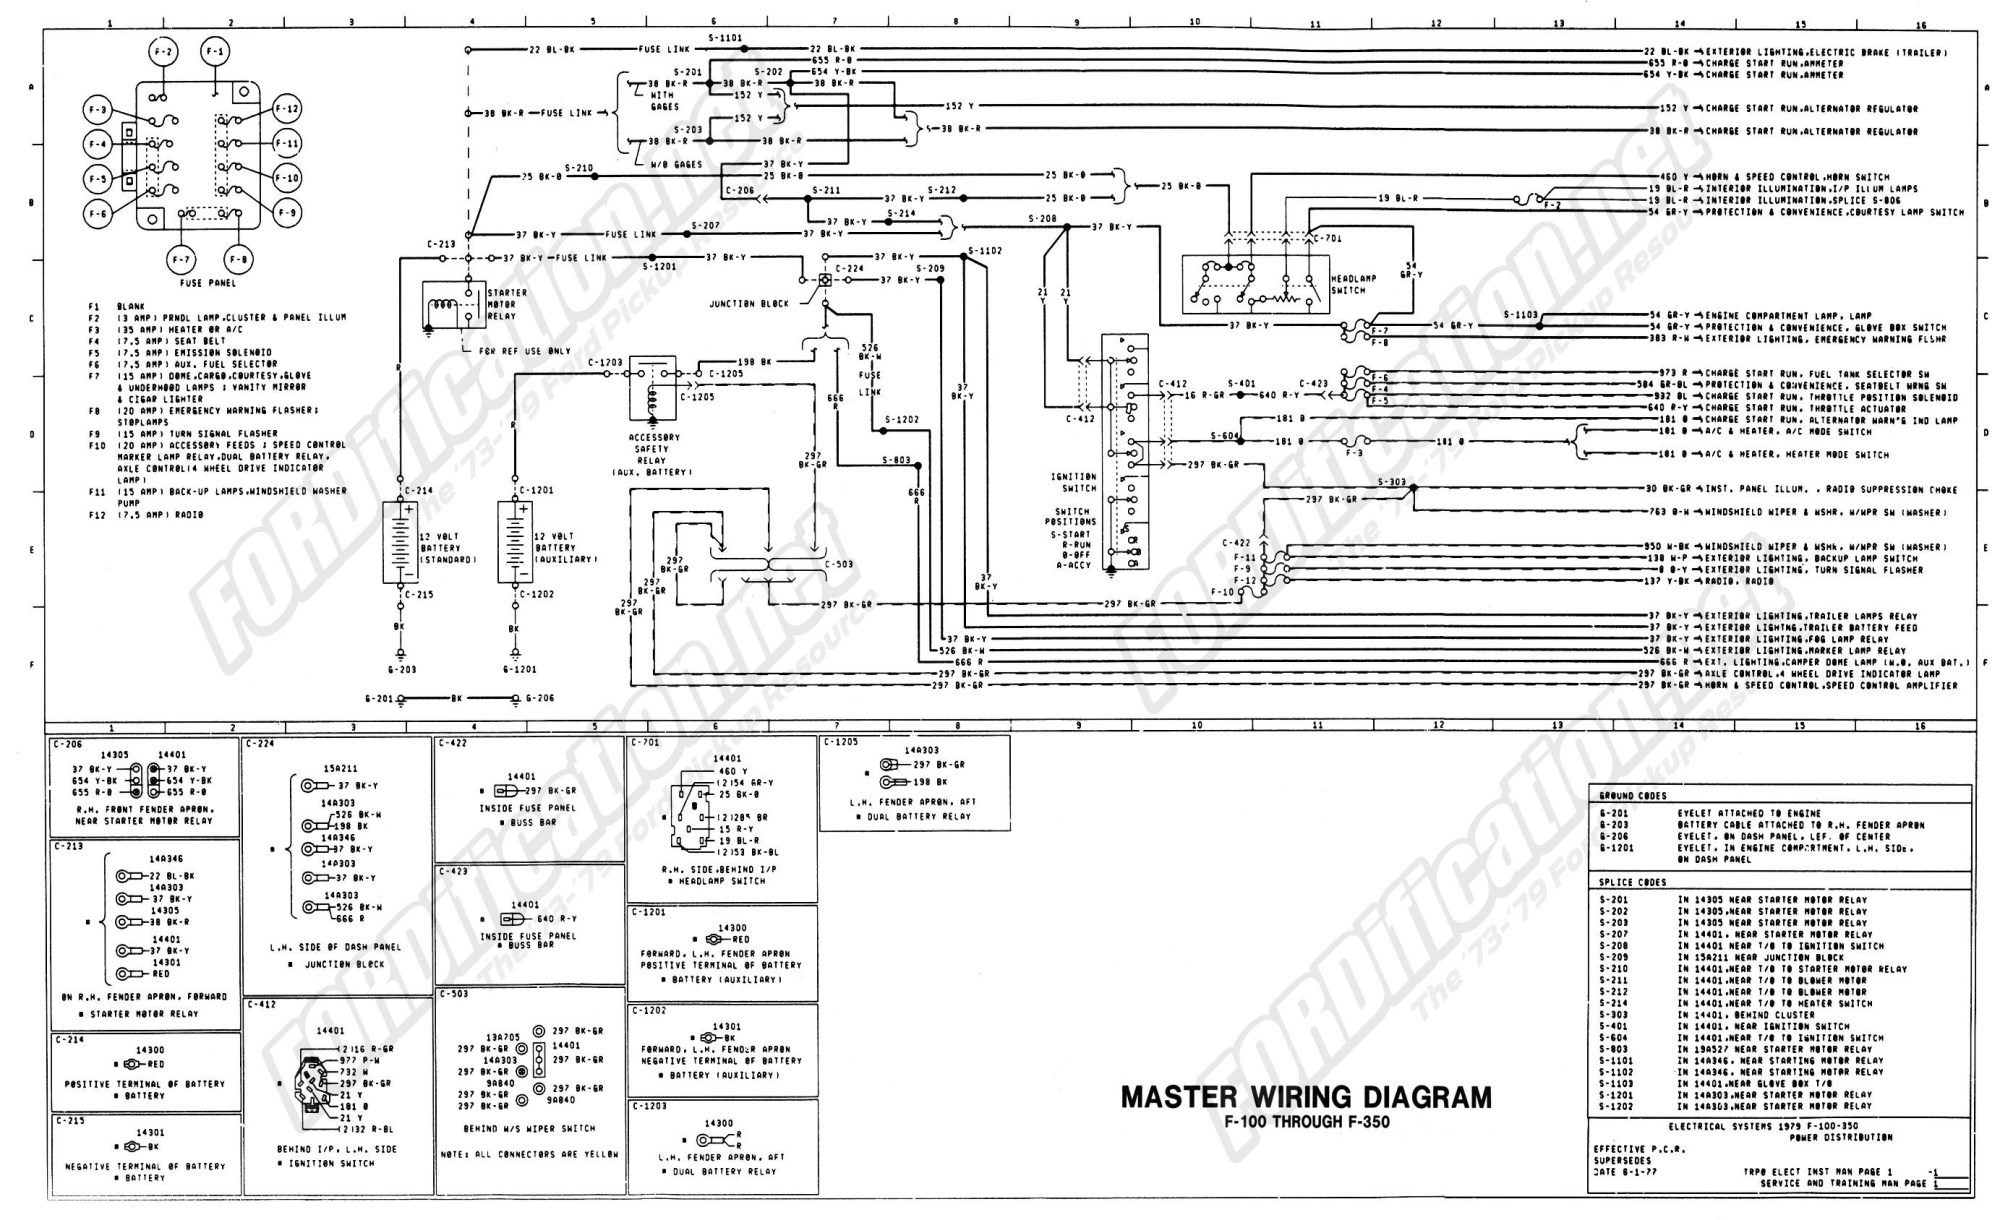 hight resolution of mack truck fuse box diagram my wiring diagram 1999 ford windstar fuse box diagram 1969 ford